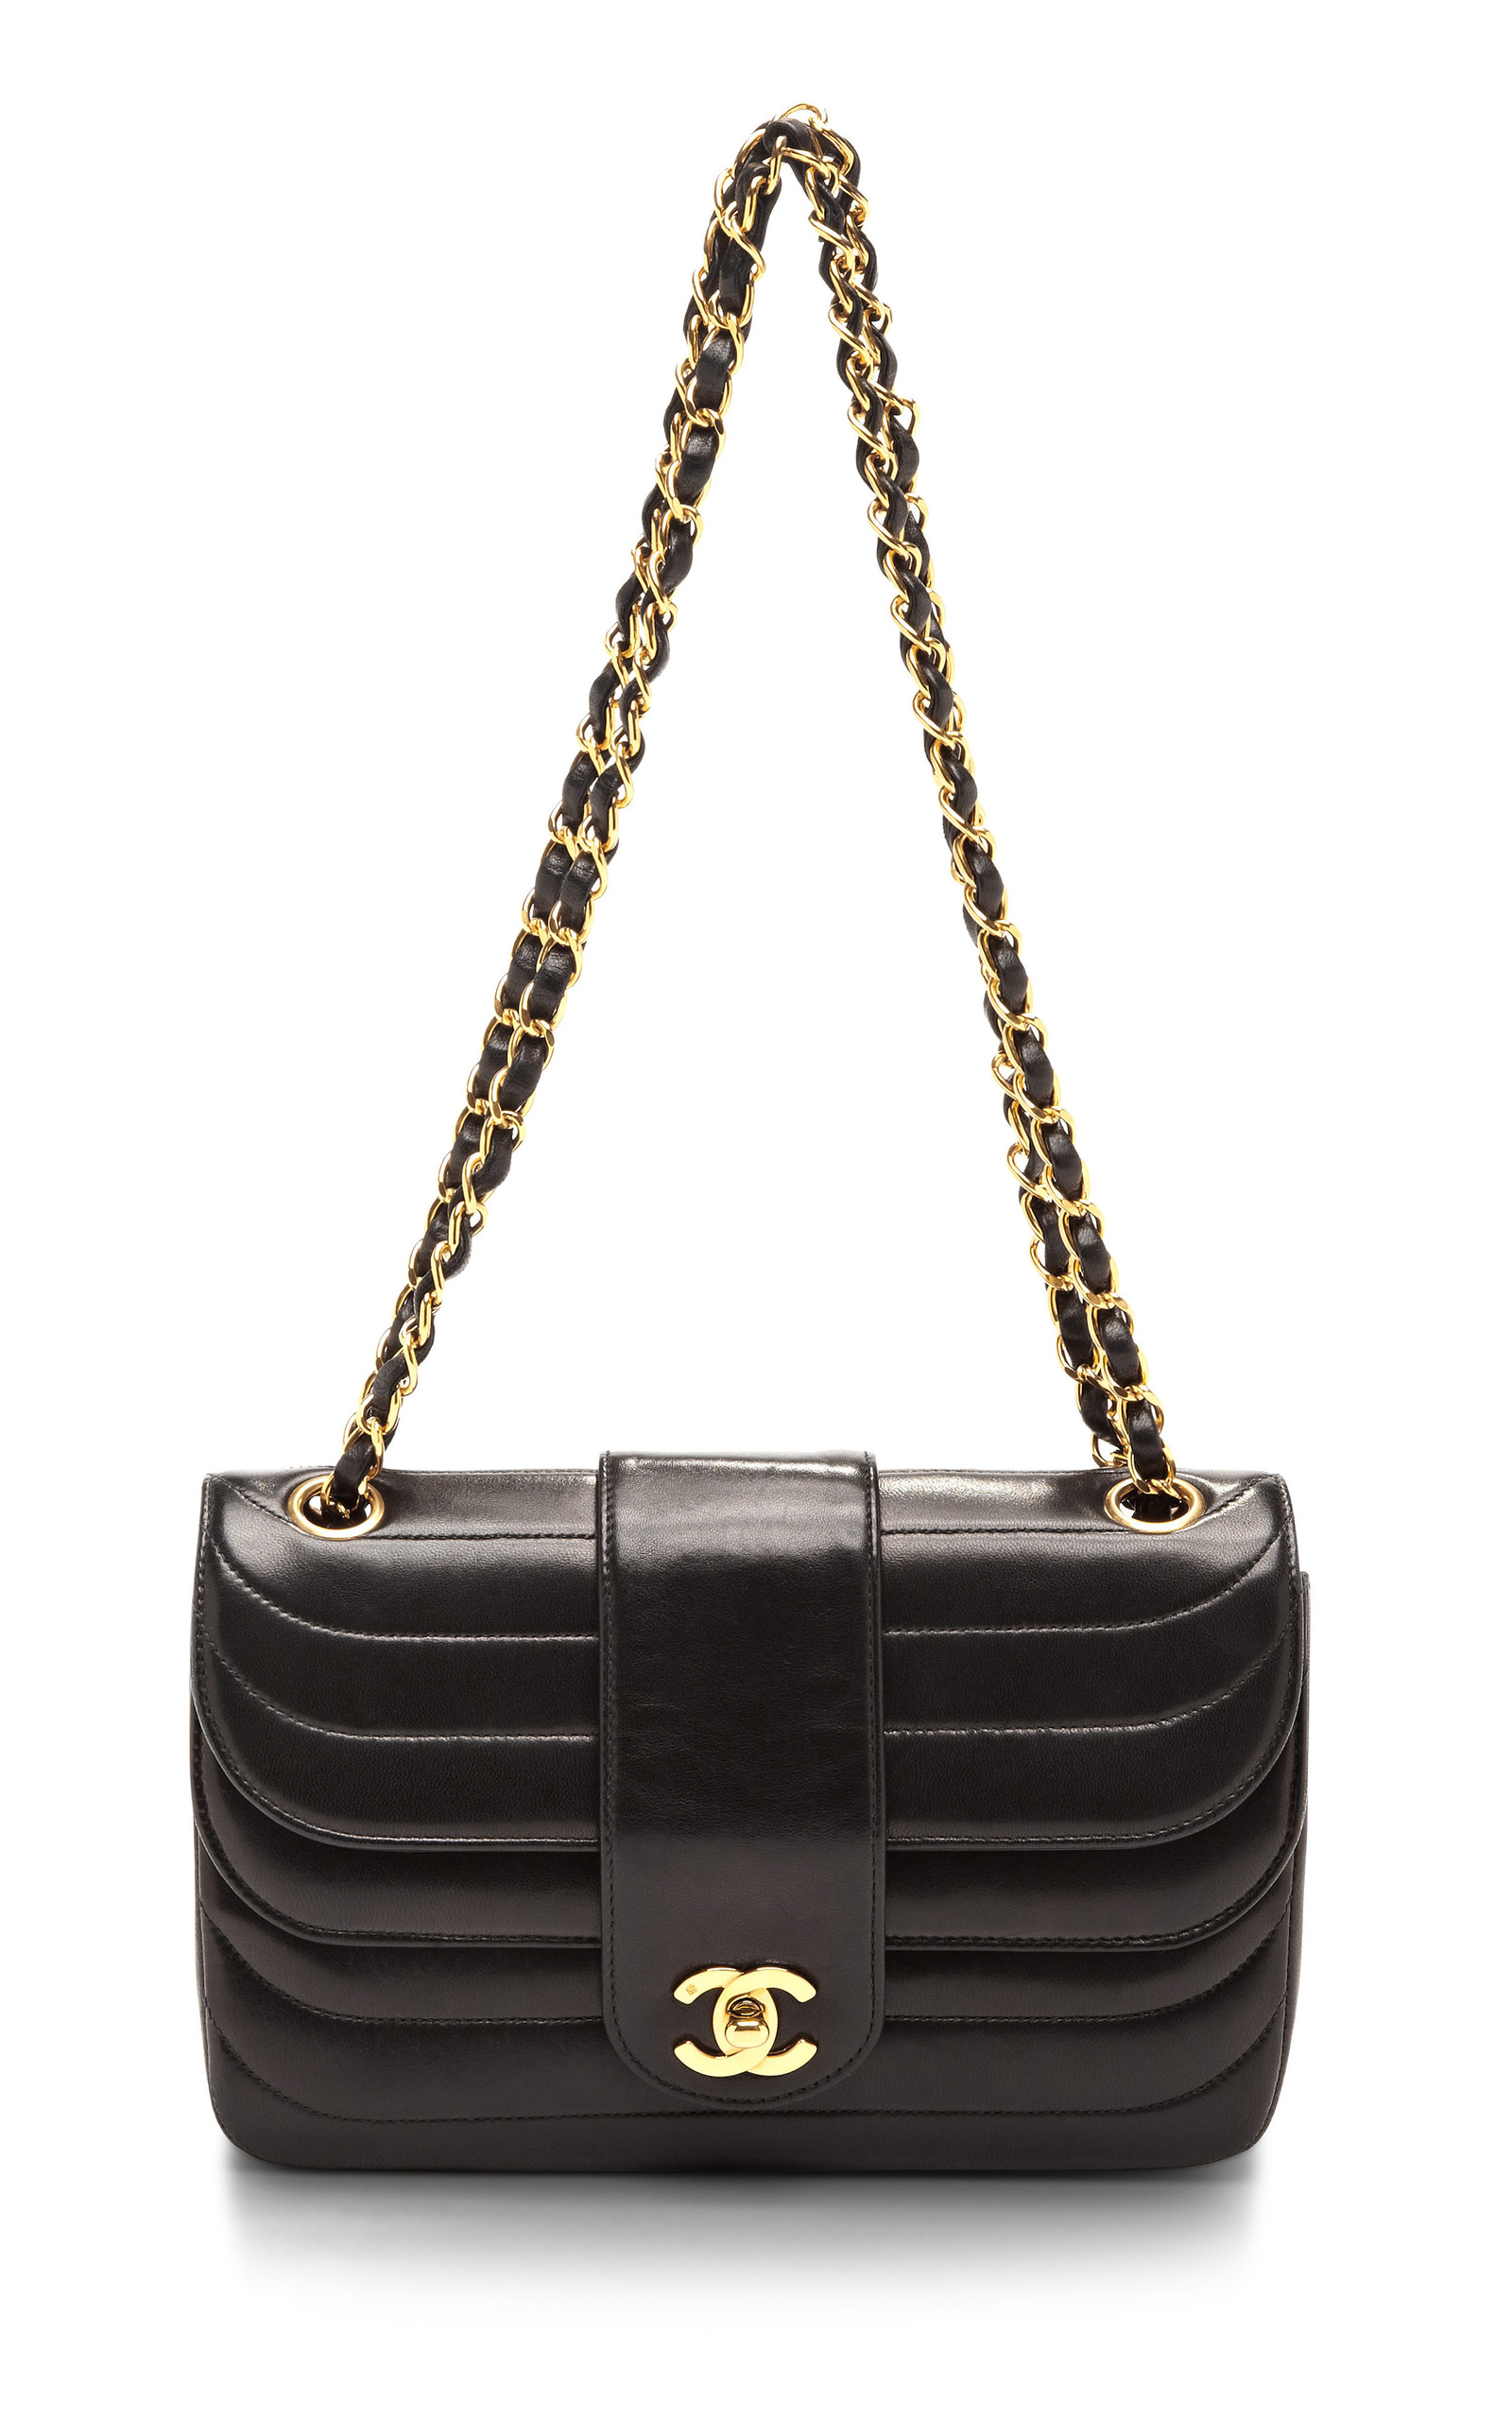 c1caf8d3784d Collectible JacketsVintage Chanel Black Horizontal Stitch Double Flap  Lambskin Bag. CLOSE. Loading. Loading